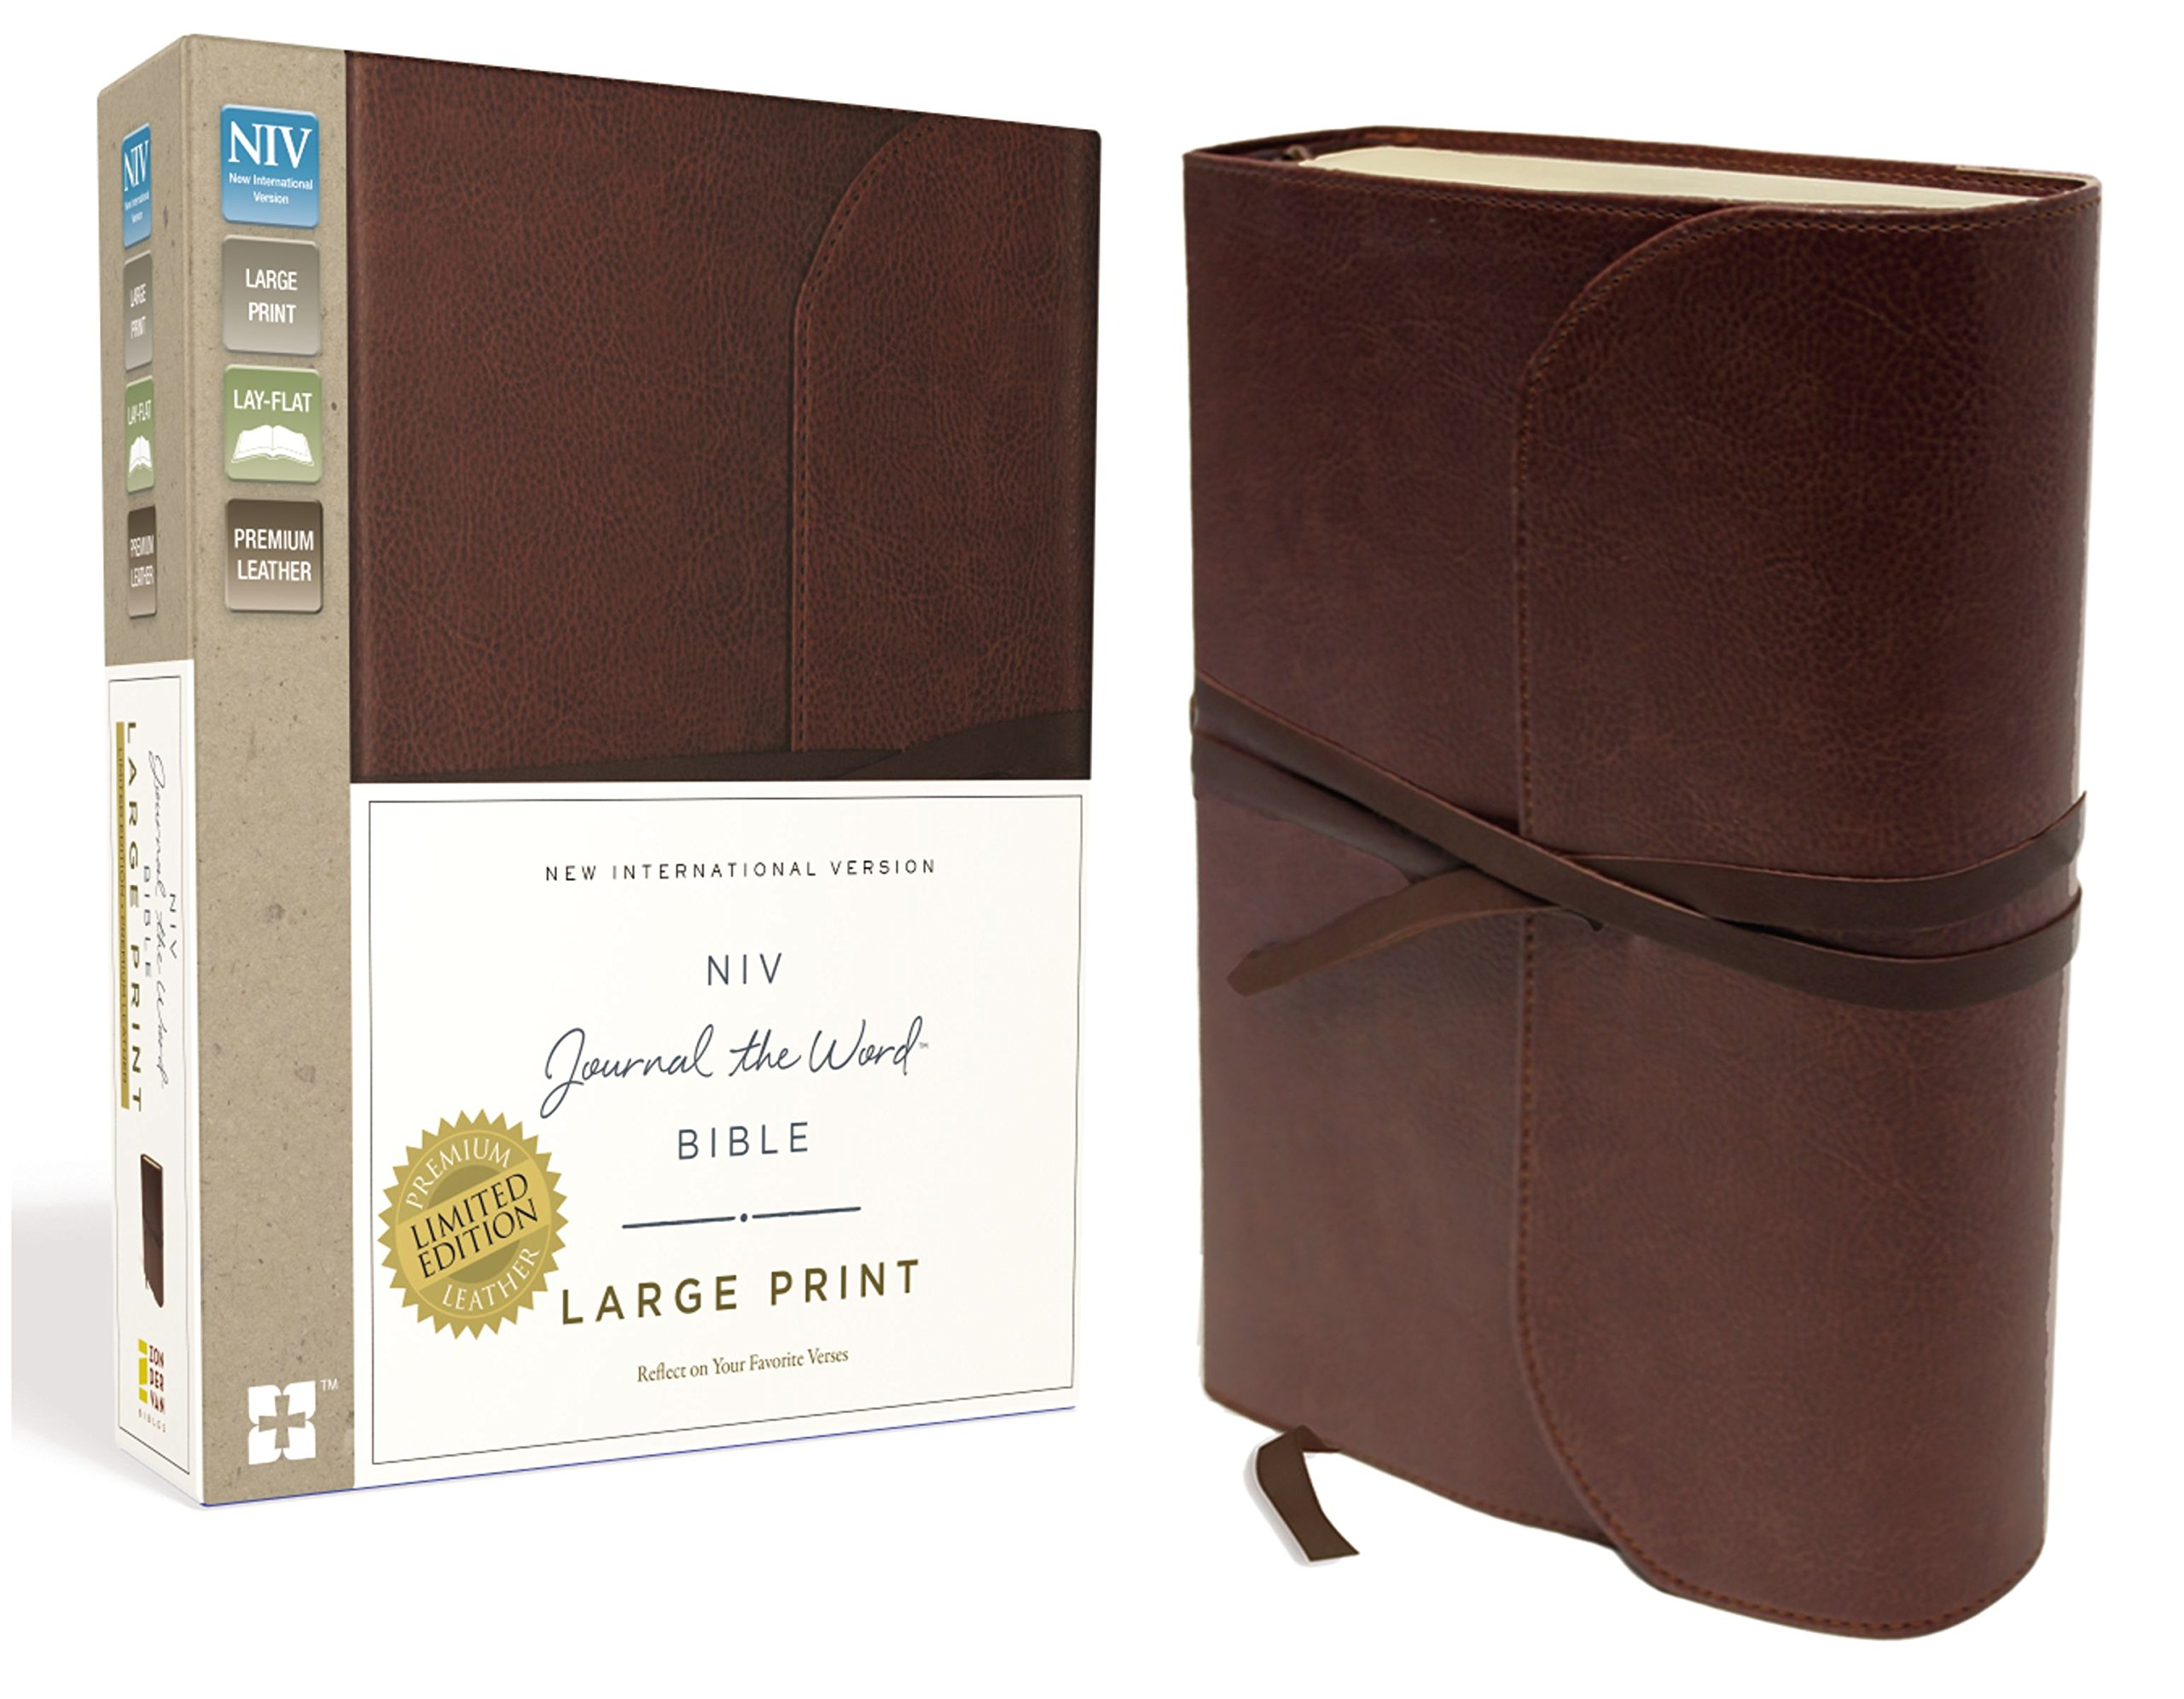 NIV, Journal the Word Bible, Large Print, Premium Leather, Brown: Reflect on Your Favorite Verses